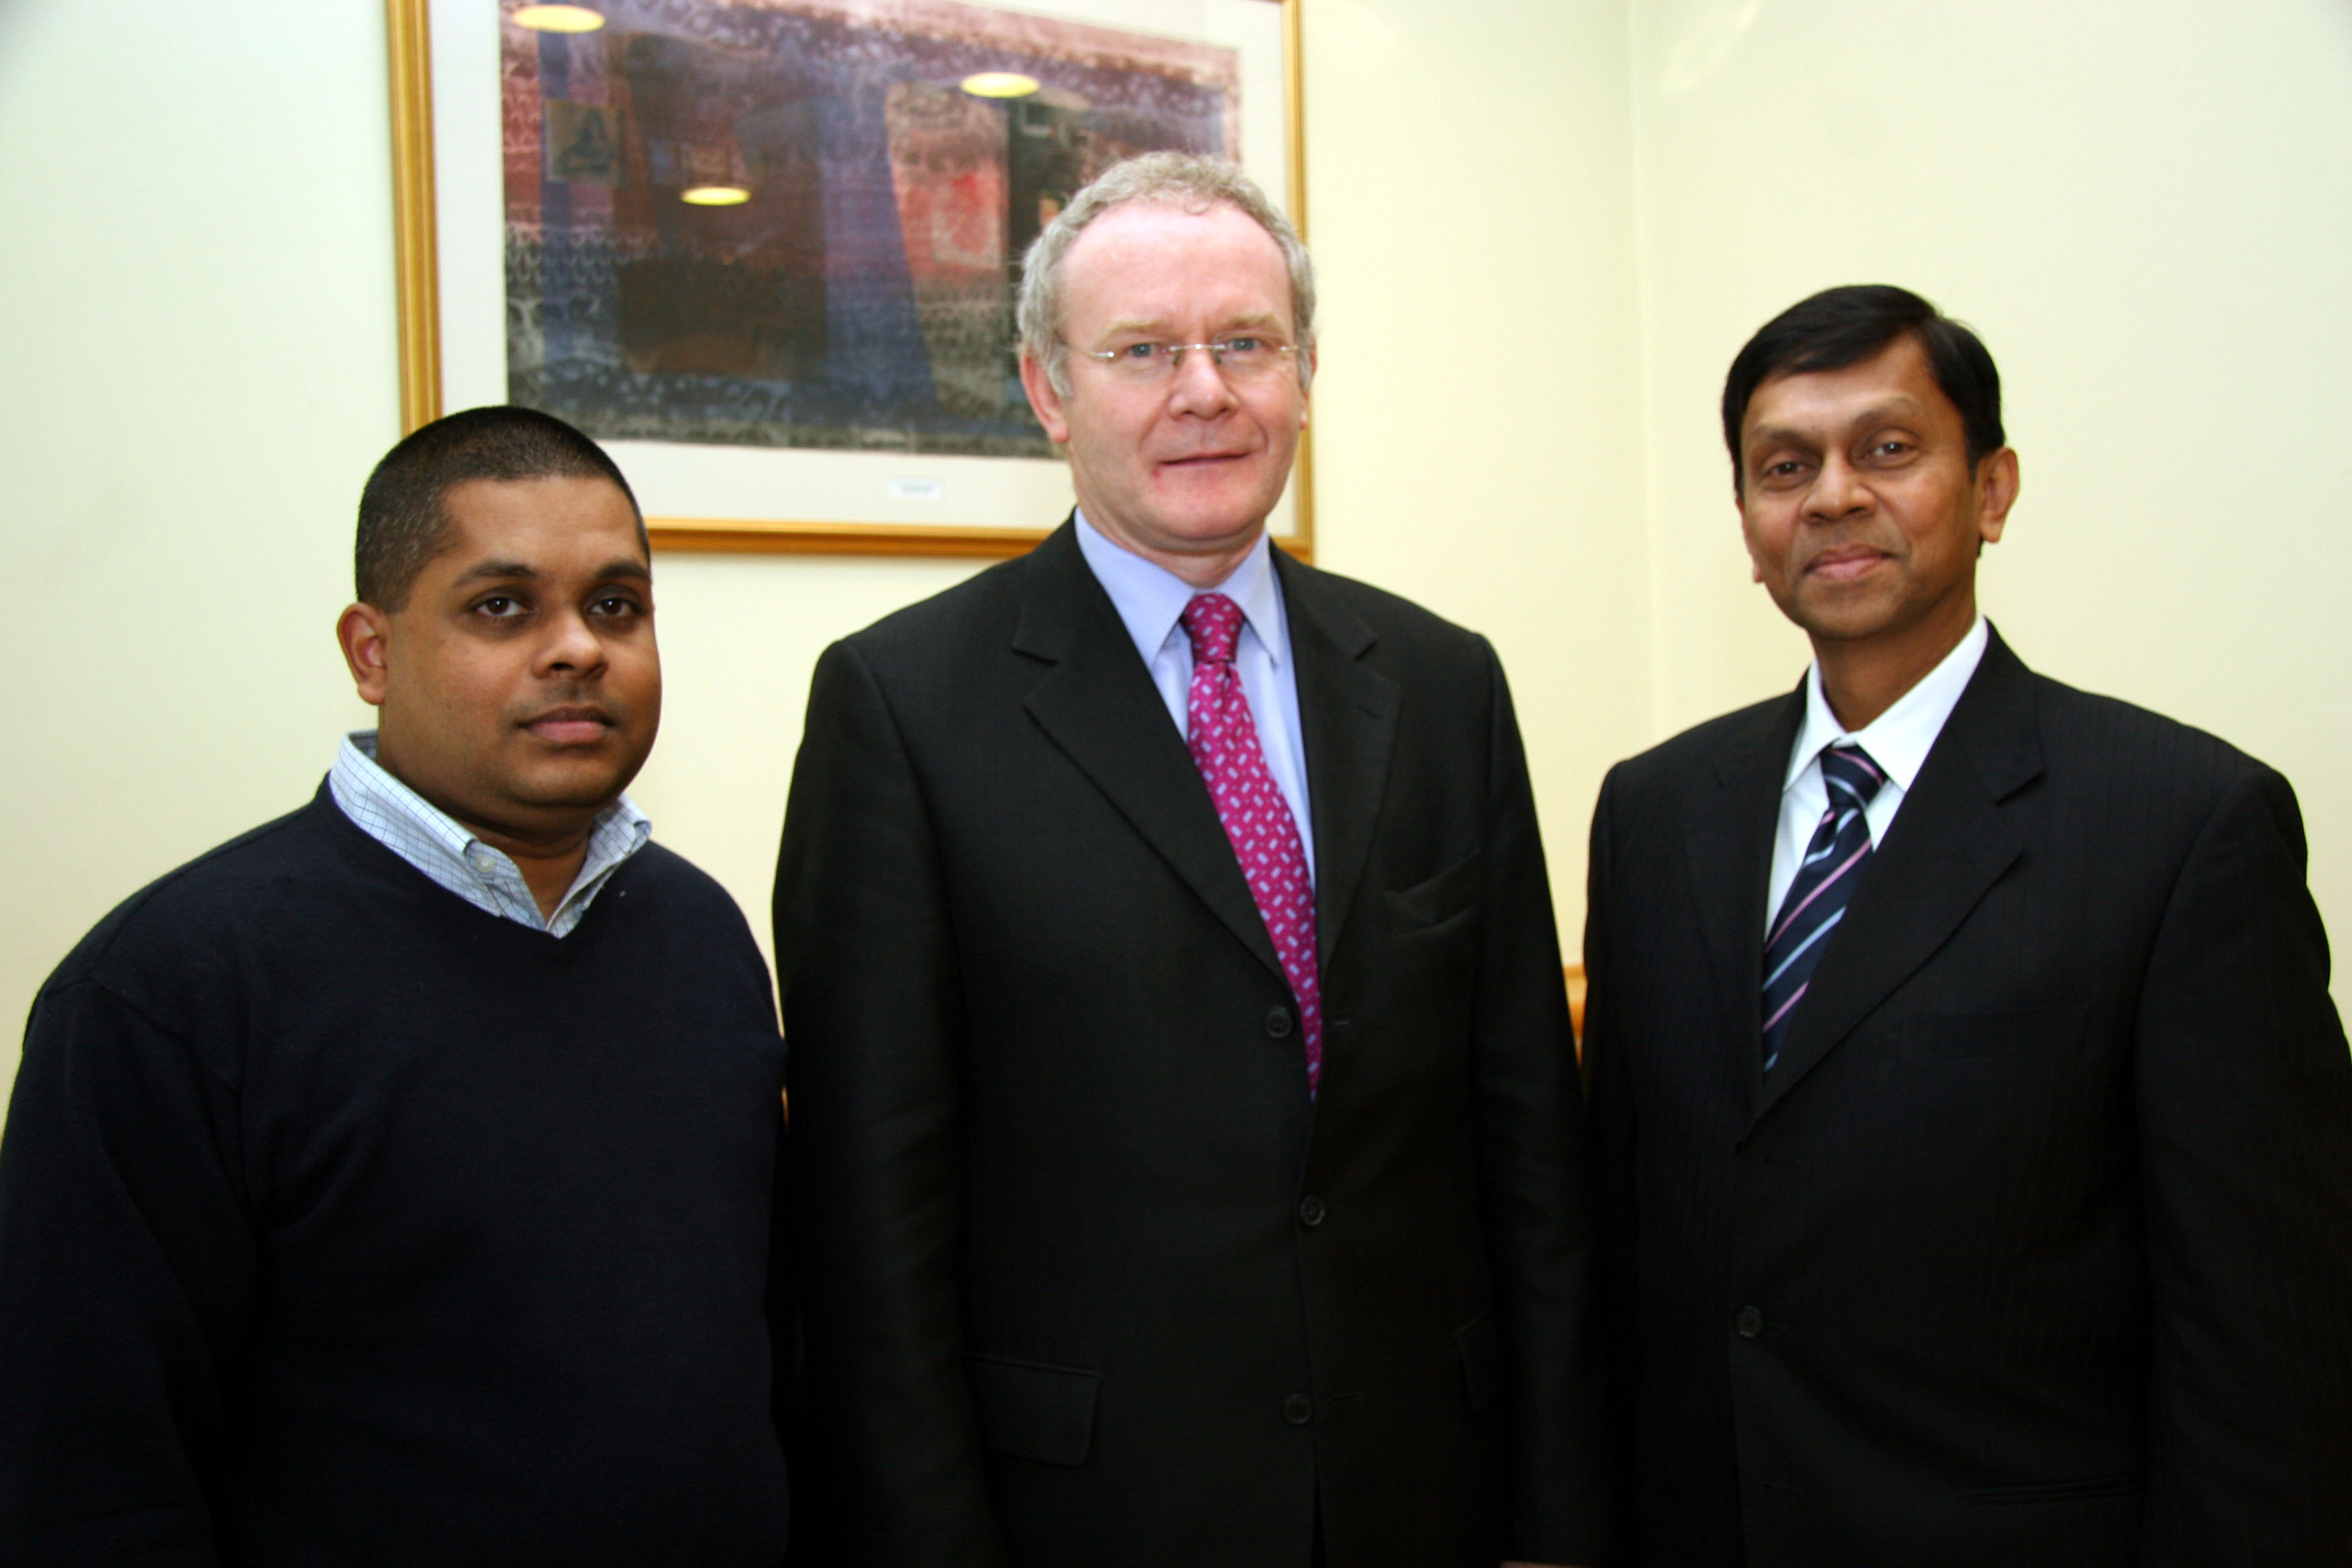 Martin-meeting-with-Sri-Lankan-delegation-on-peace